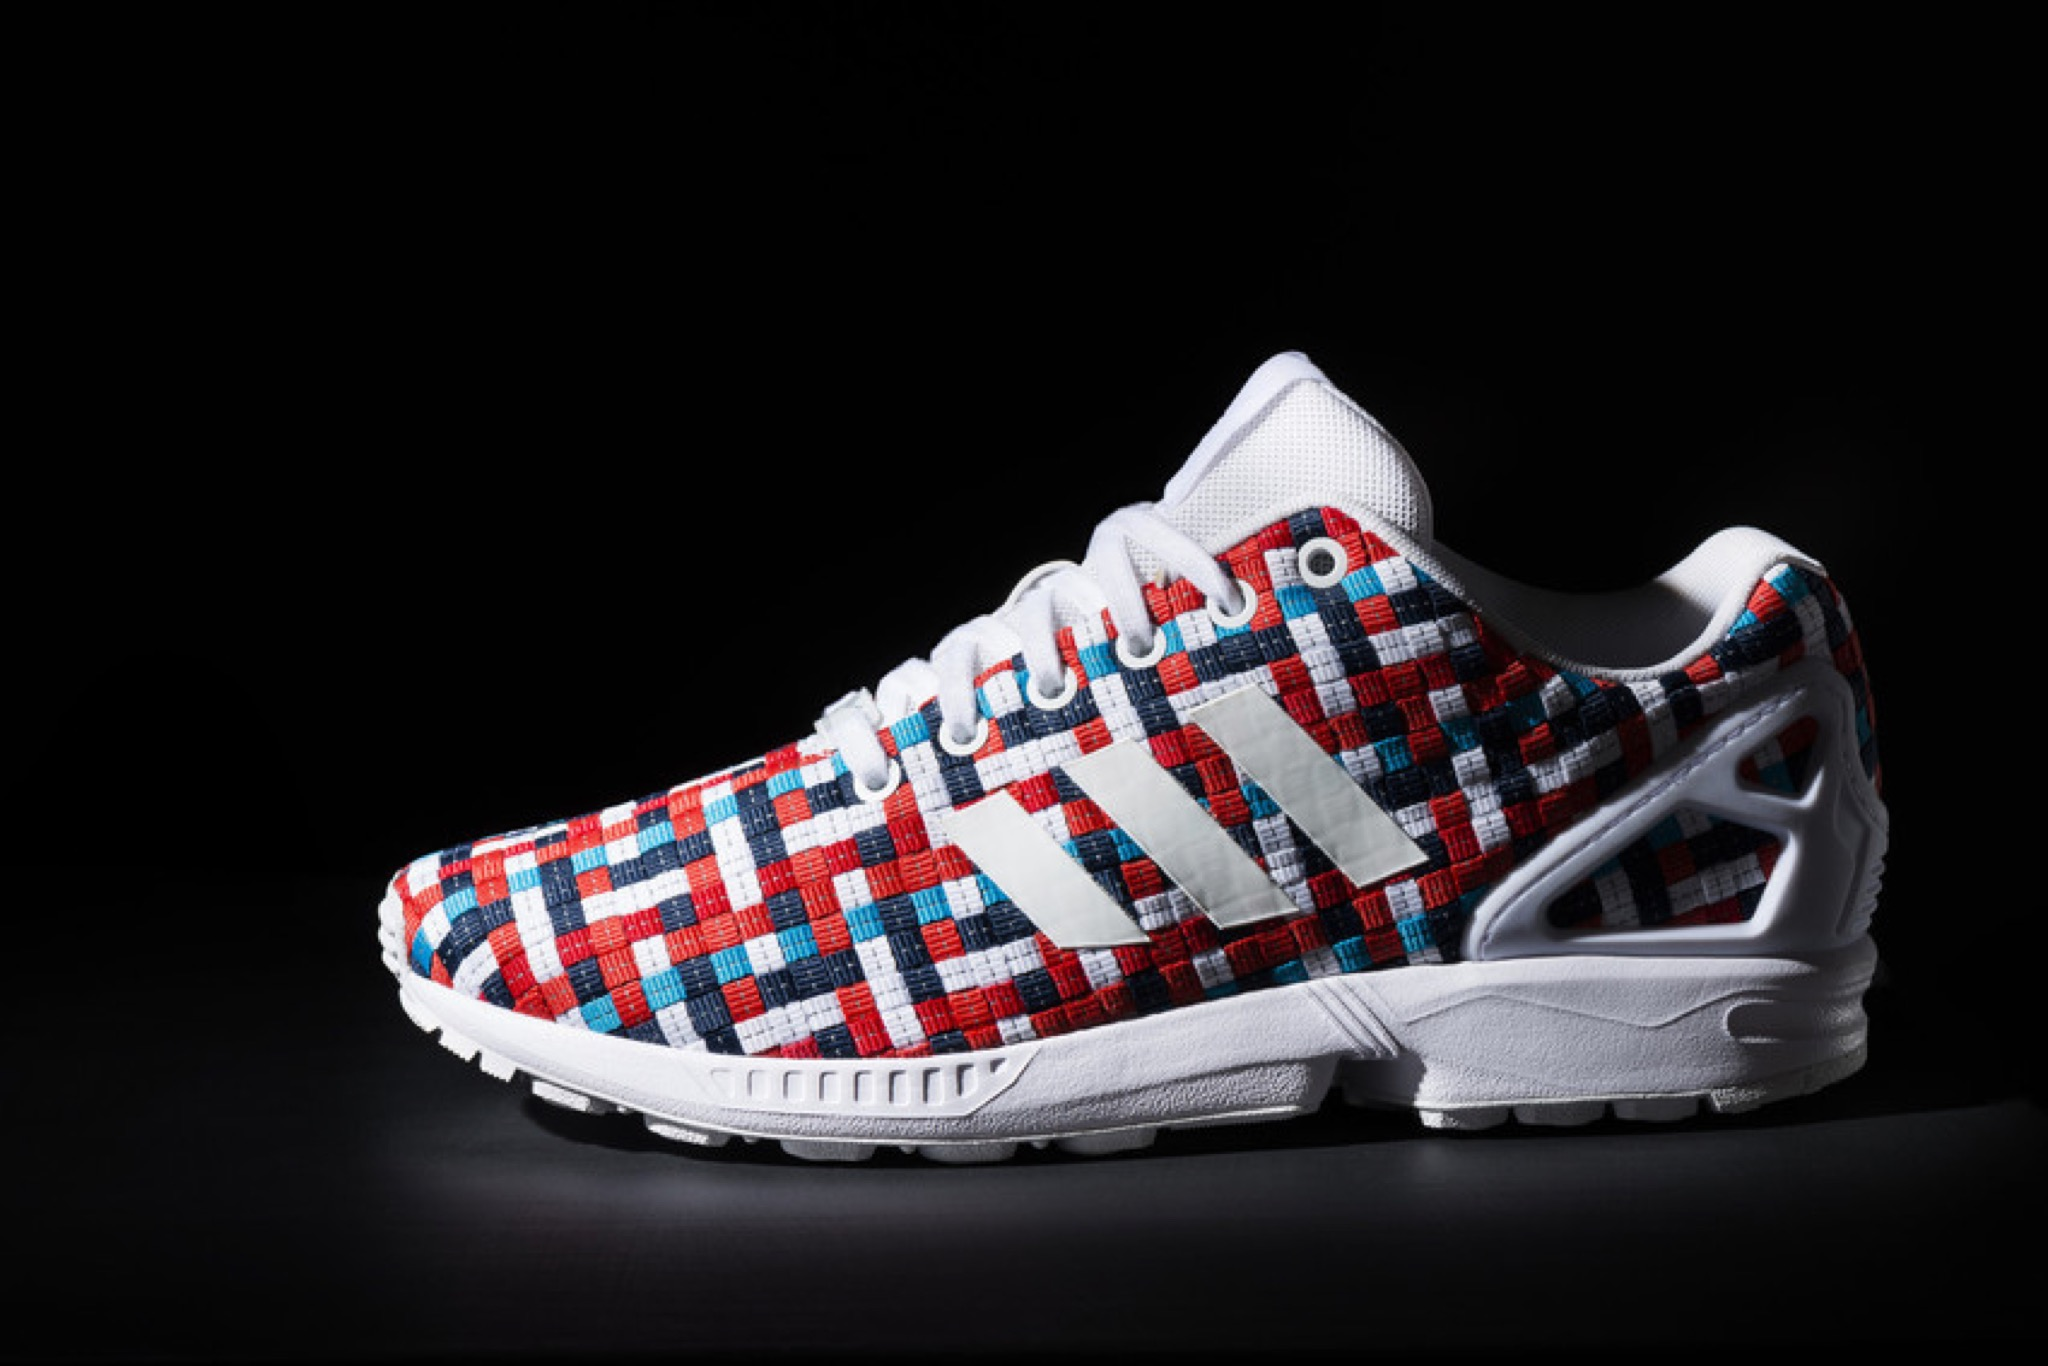 Adidas Zx Flux Foot Locker